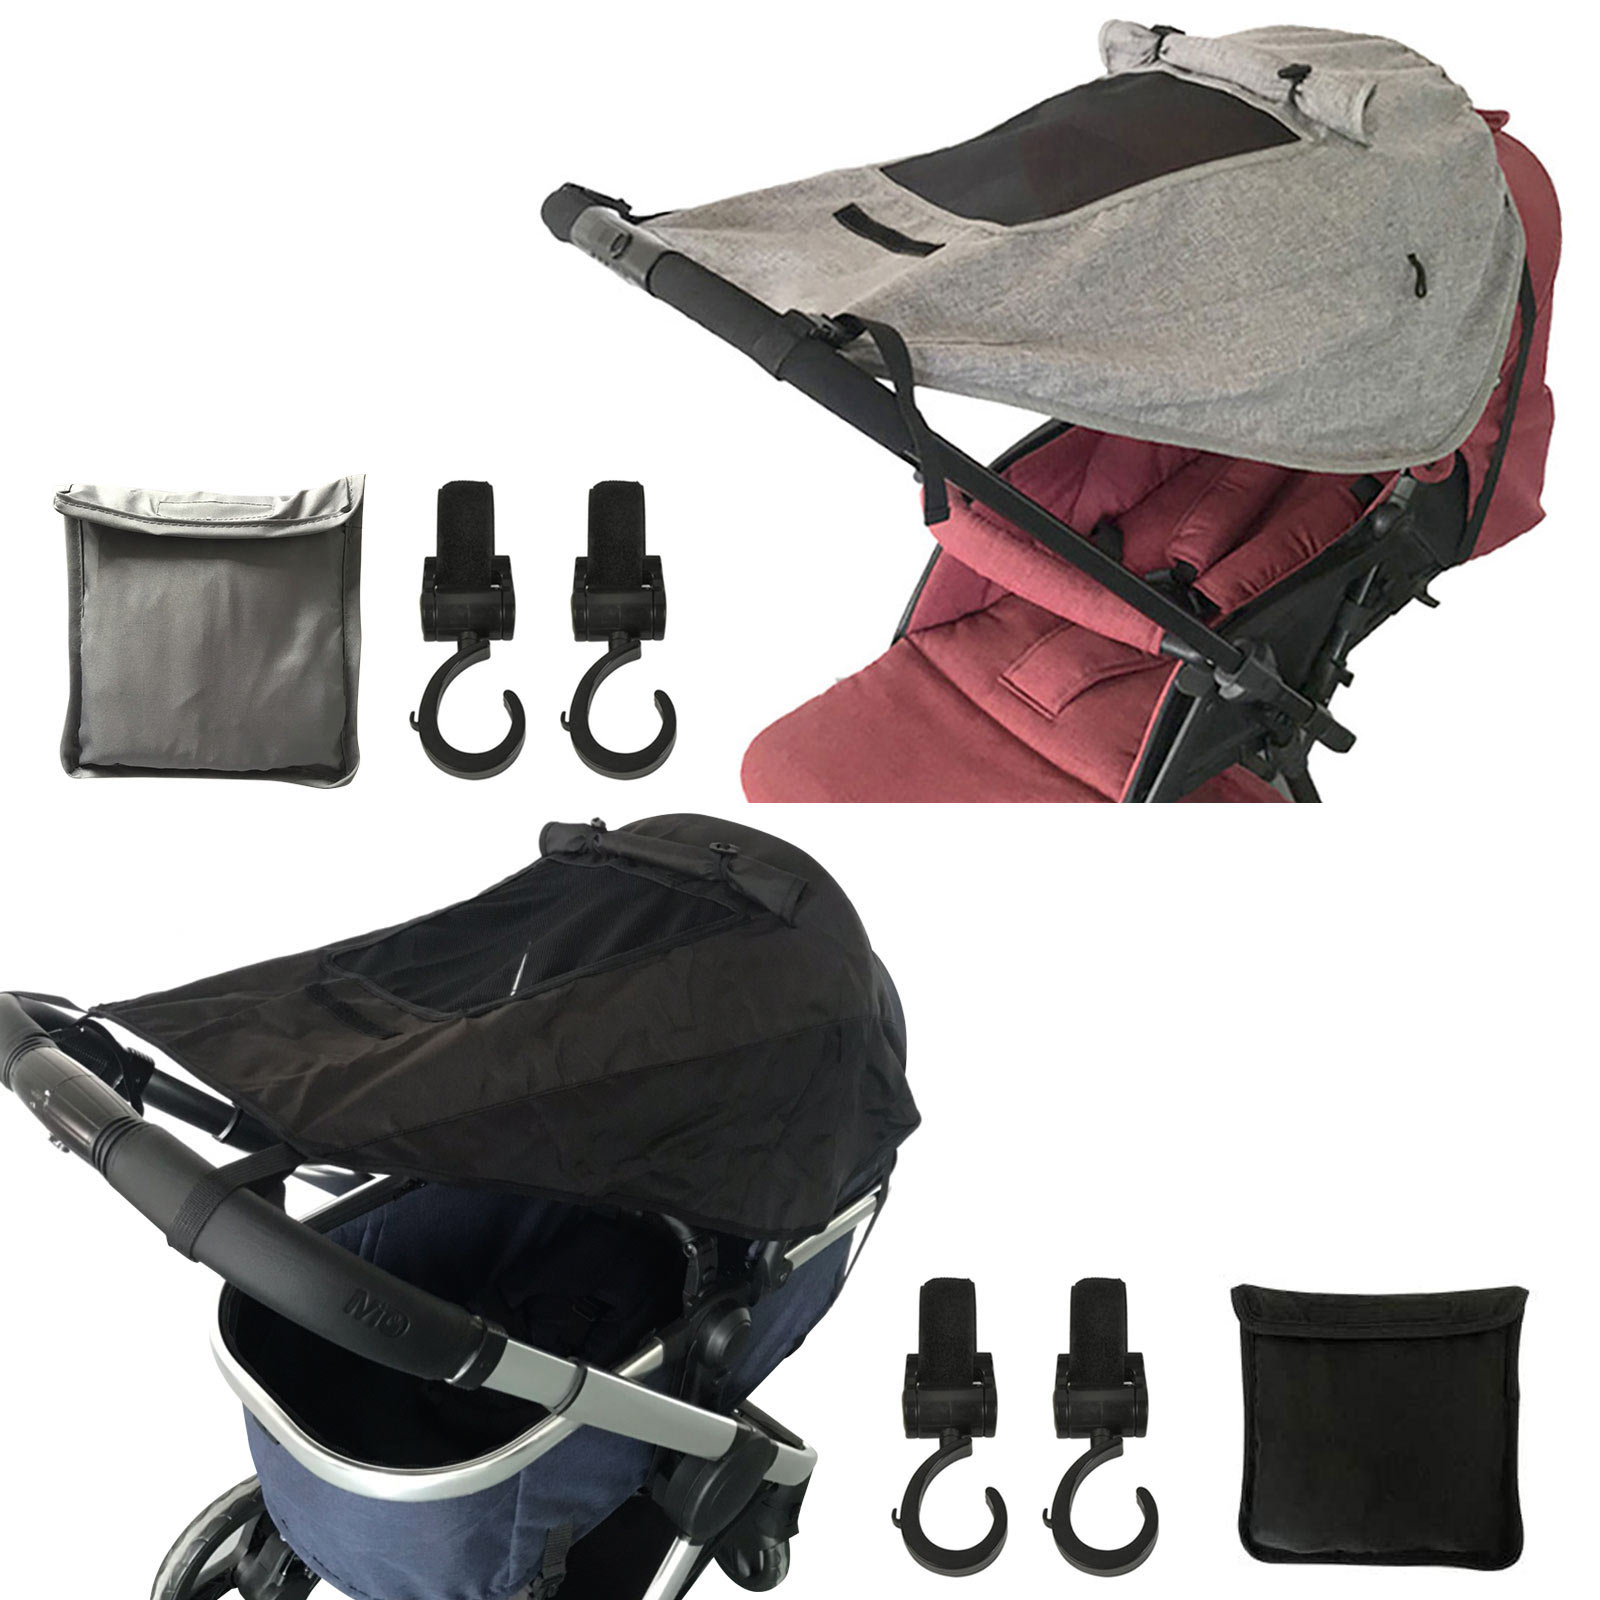 Universal Sun Shade for Pushchairs UV Sun Protection Waterproof Awning with Viewing Window and Stroller Hooks for Prams Buggy